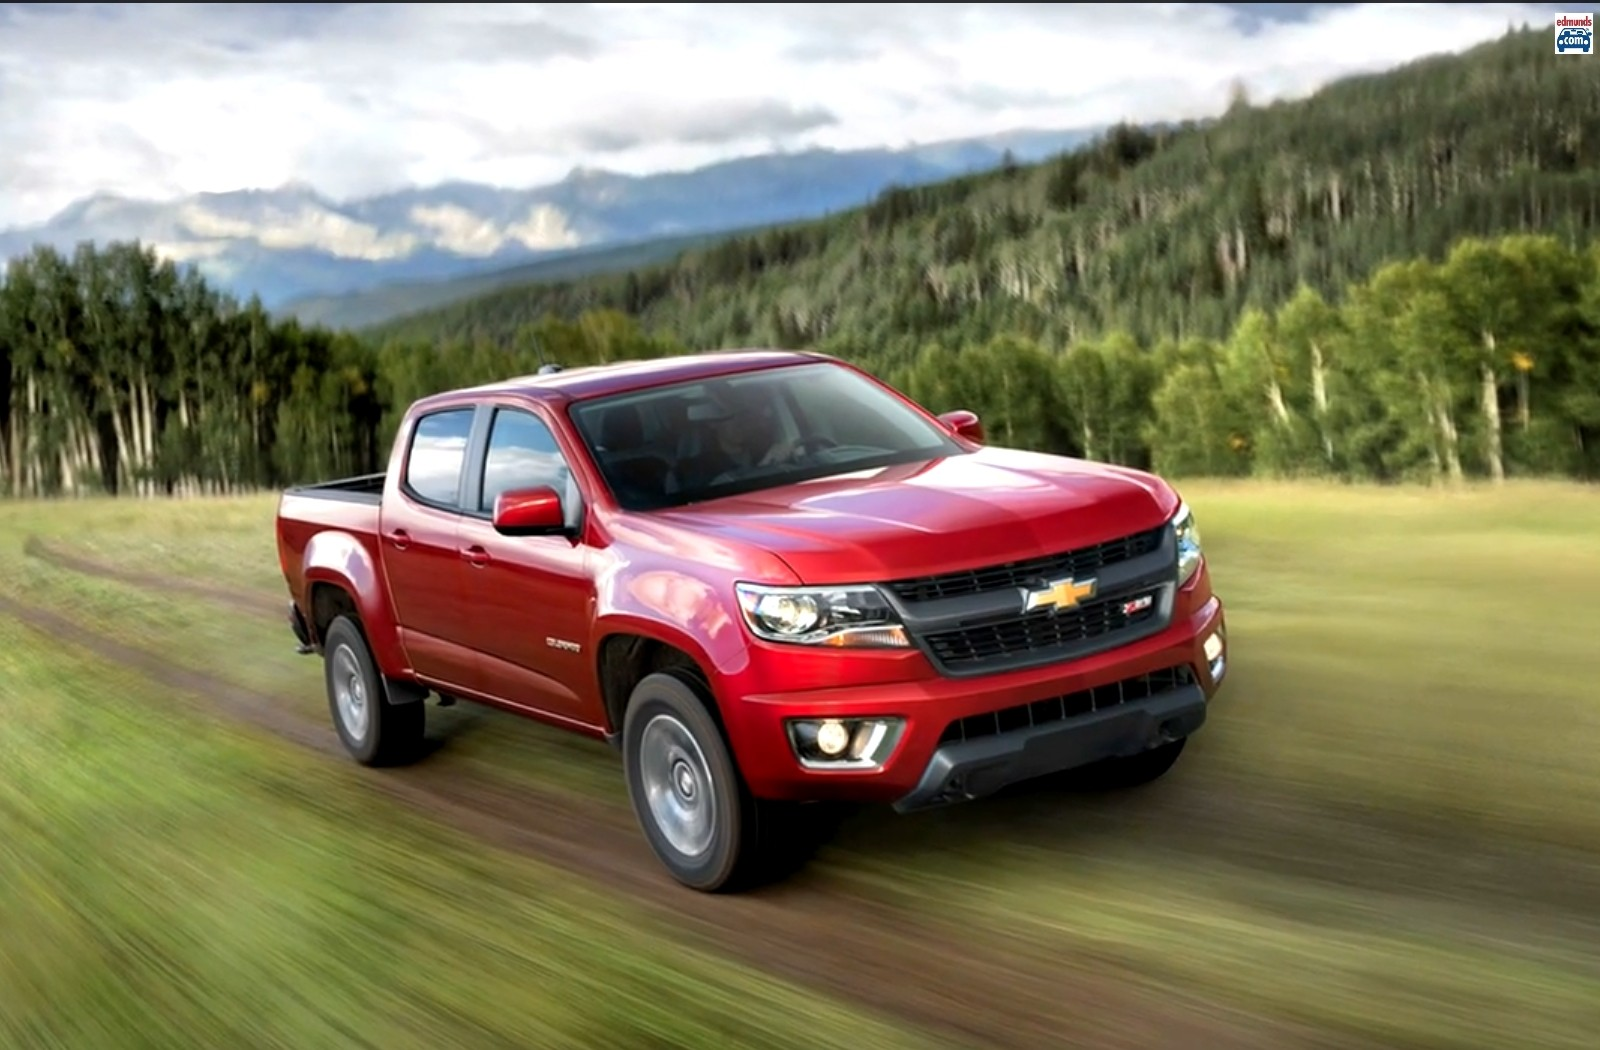 2014 - [Chevrolet / GMC] Colorado / Canyon Colora10